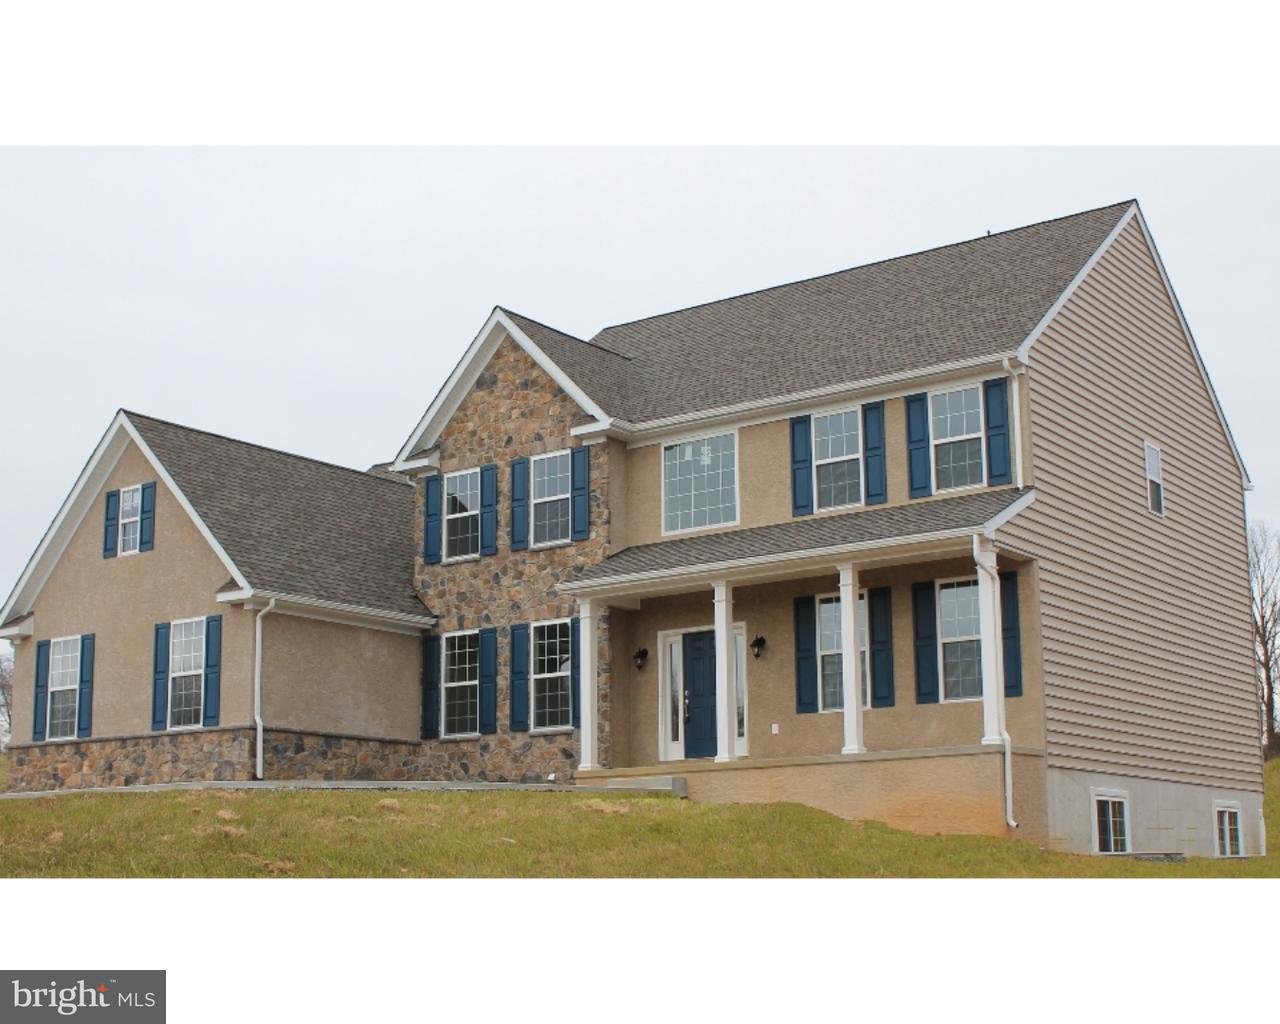 229 W 7TH AVE, COLLEGEVILLE - Listed at $552,506, COLLEGEVILLE